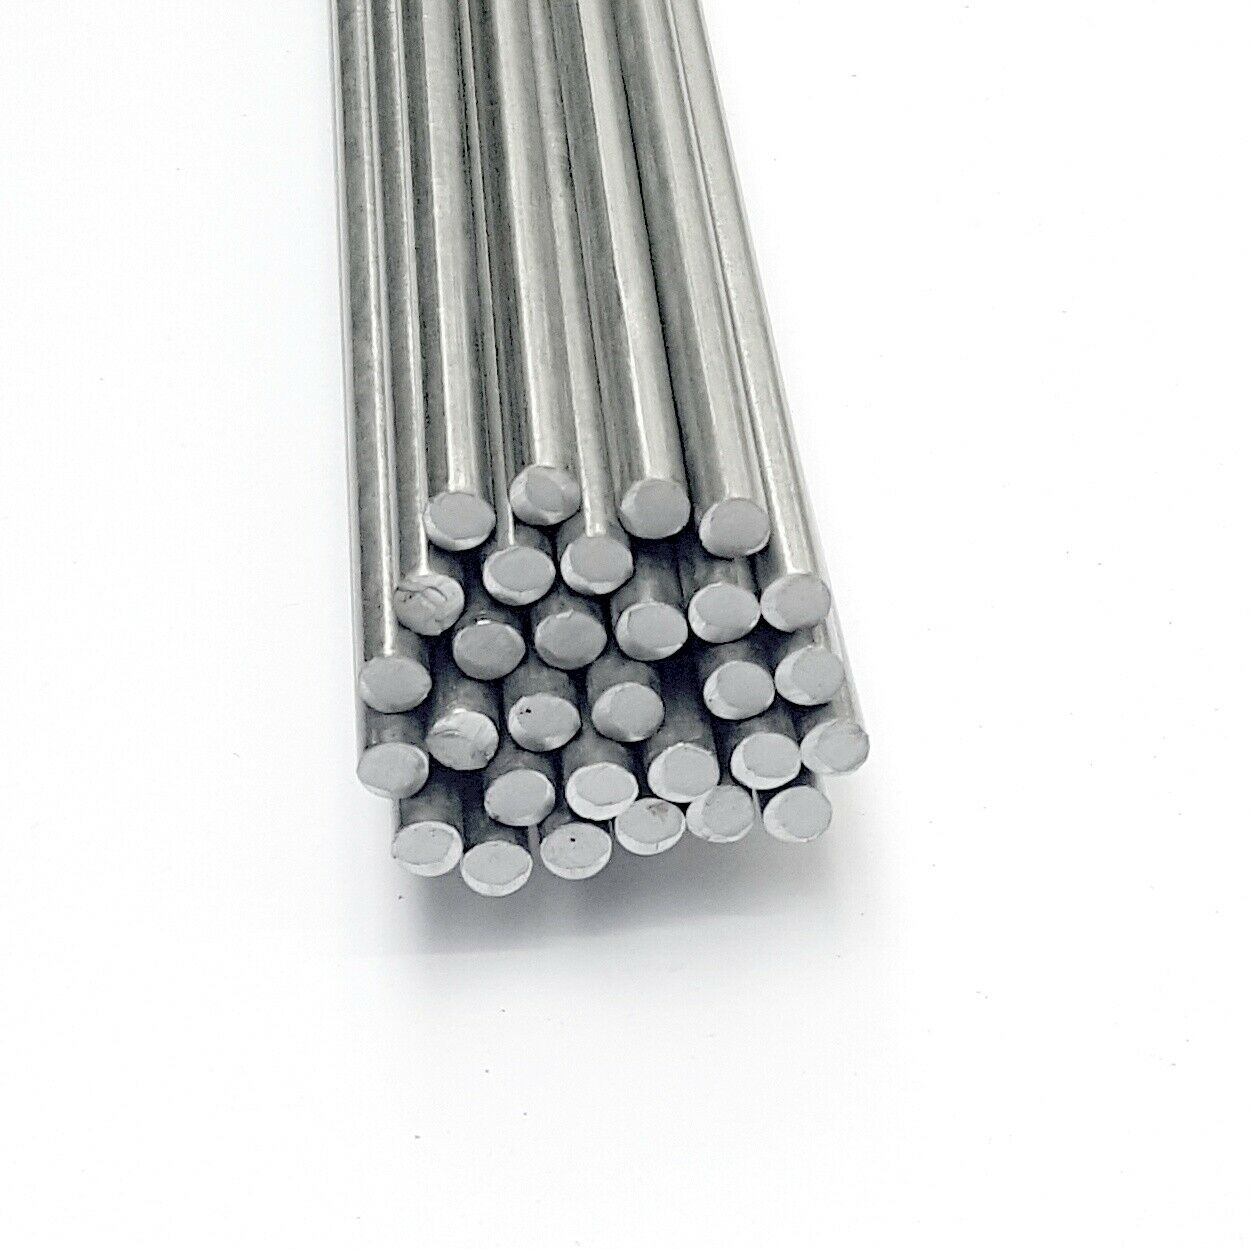 Steel Wire 6mm x 6ft -1829mm, Pack of 30- Mild Steel Rods MCNS020